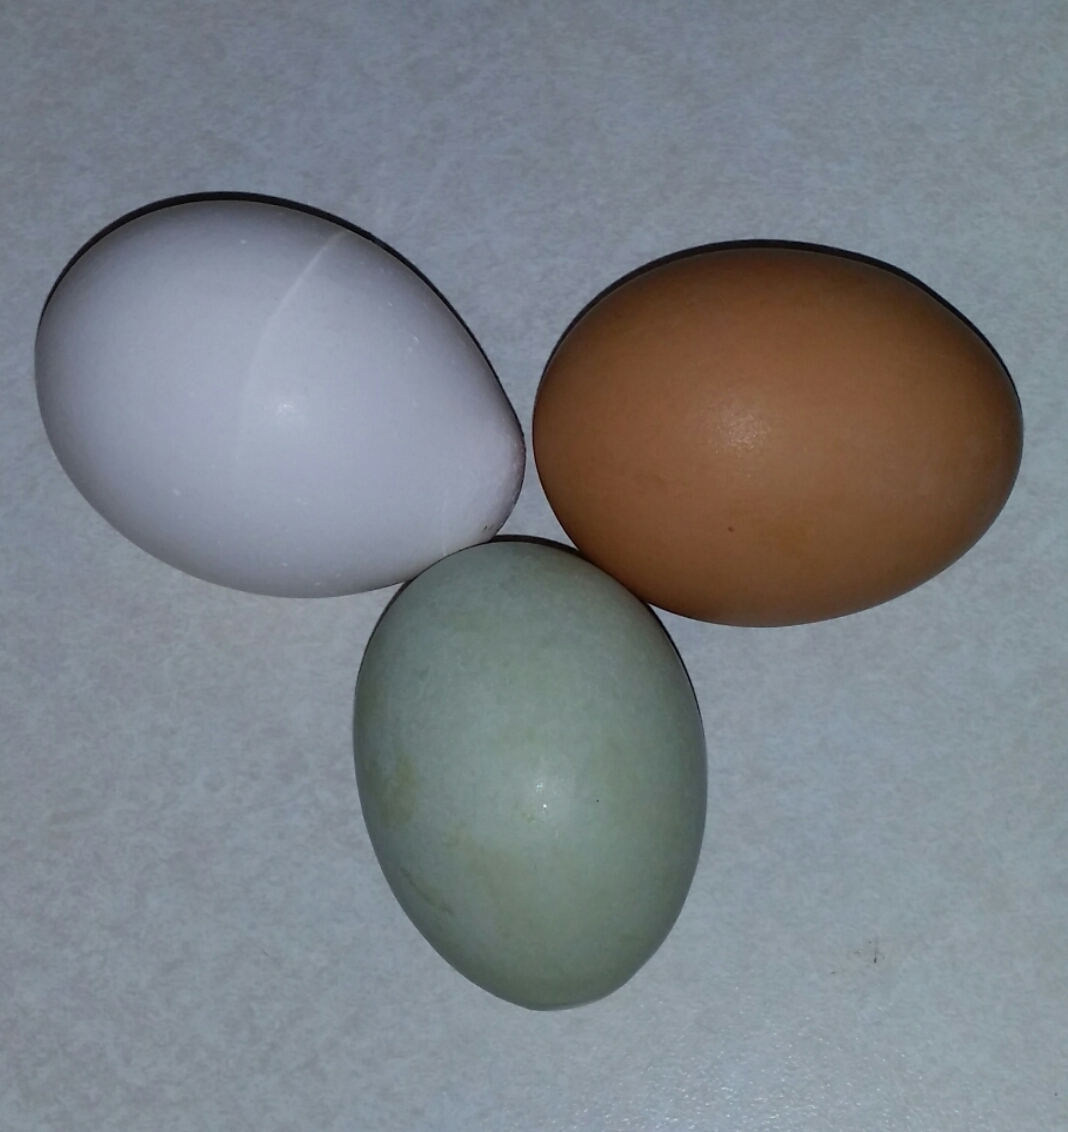 Jumbo Brown Eggs Laying Chickens